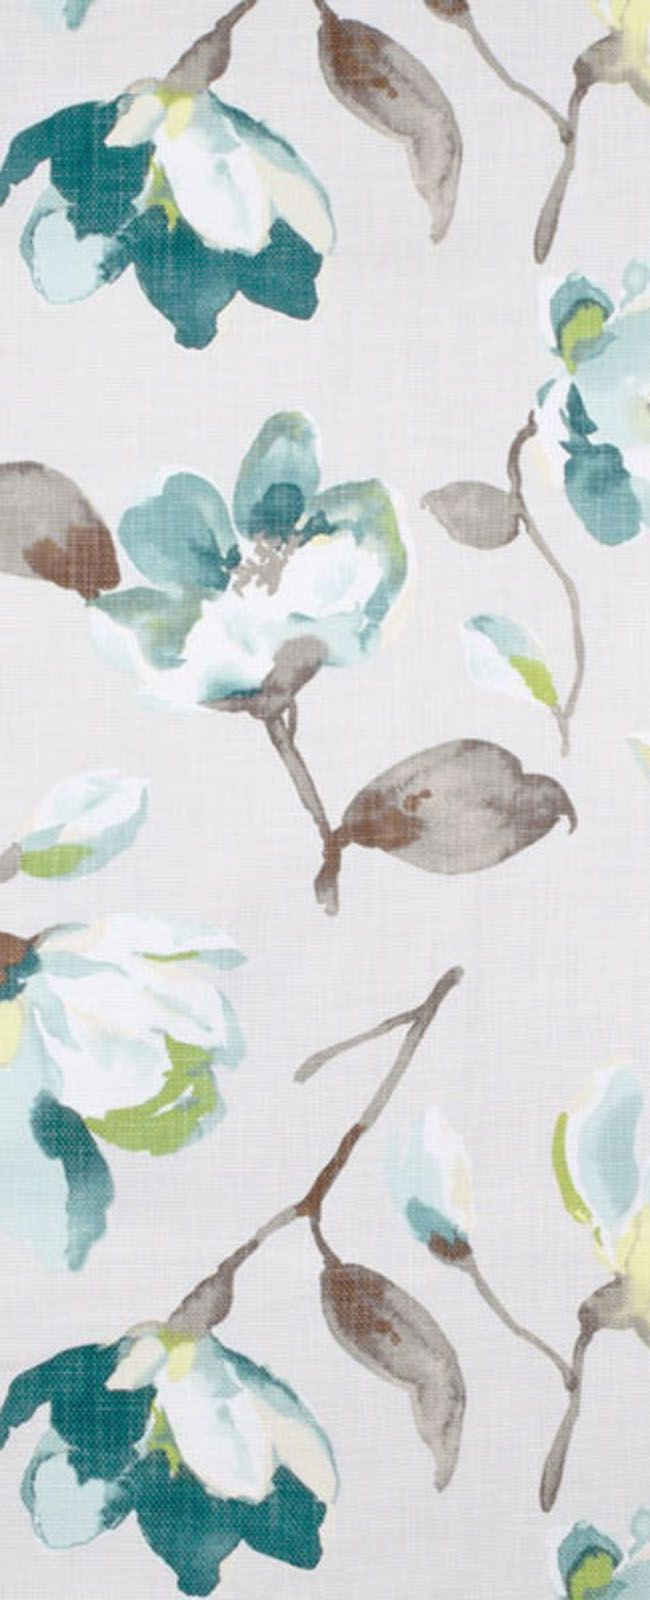 Braemore Fleur Summer decor Fabric with gray, turquoise and green